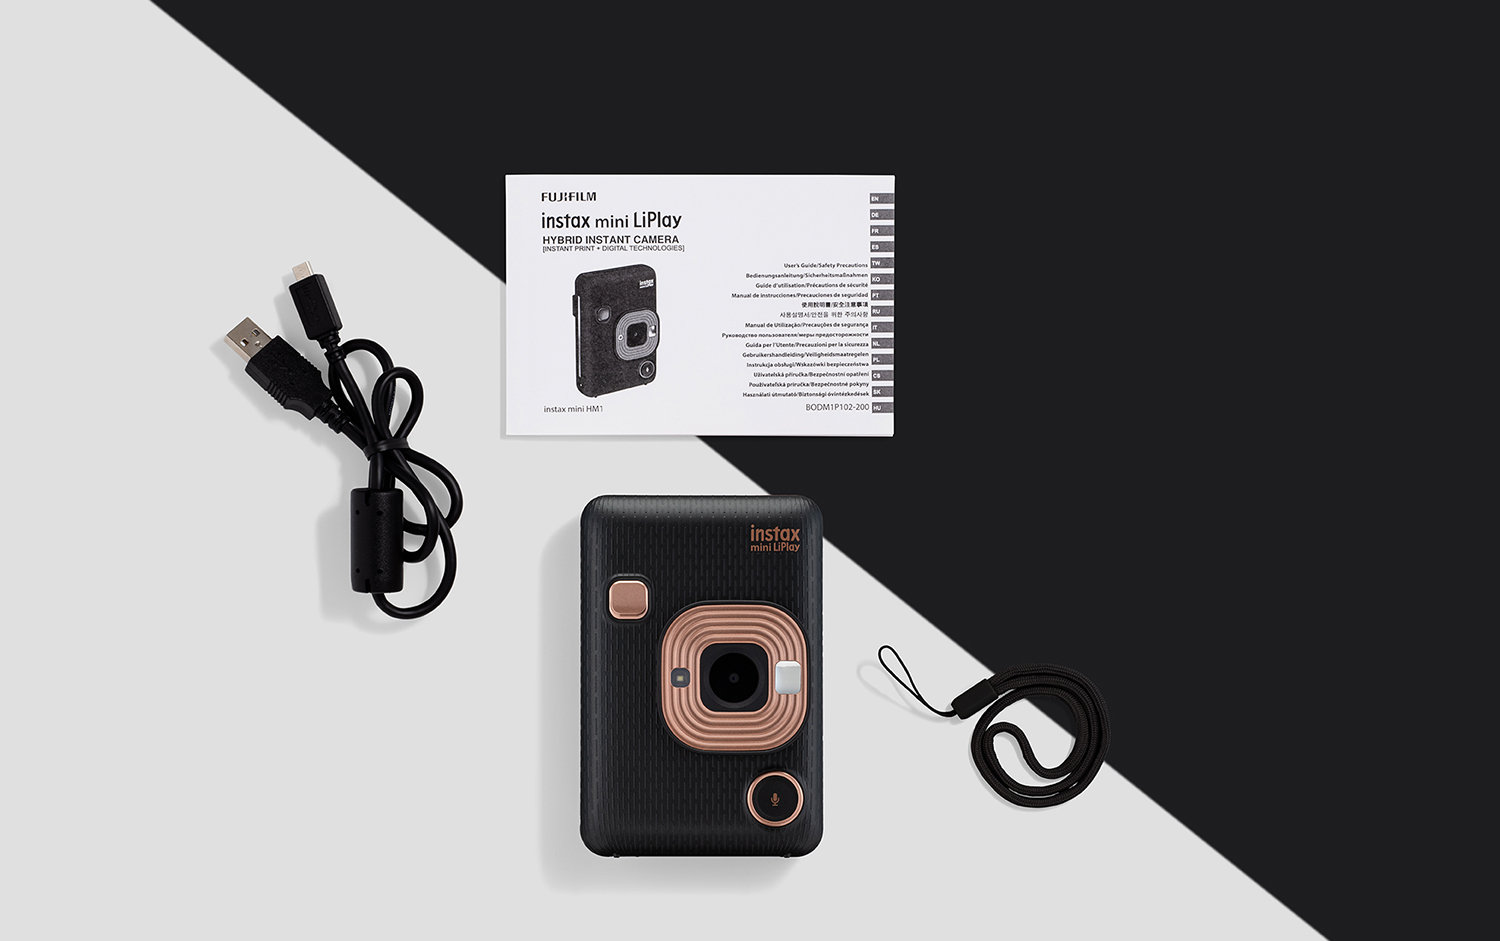 Fujifilm-instax-mini-liplay-black-image-5